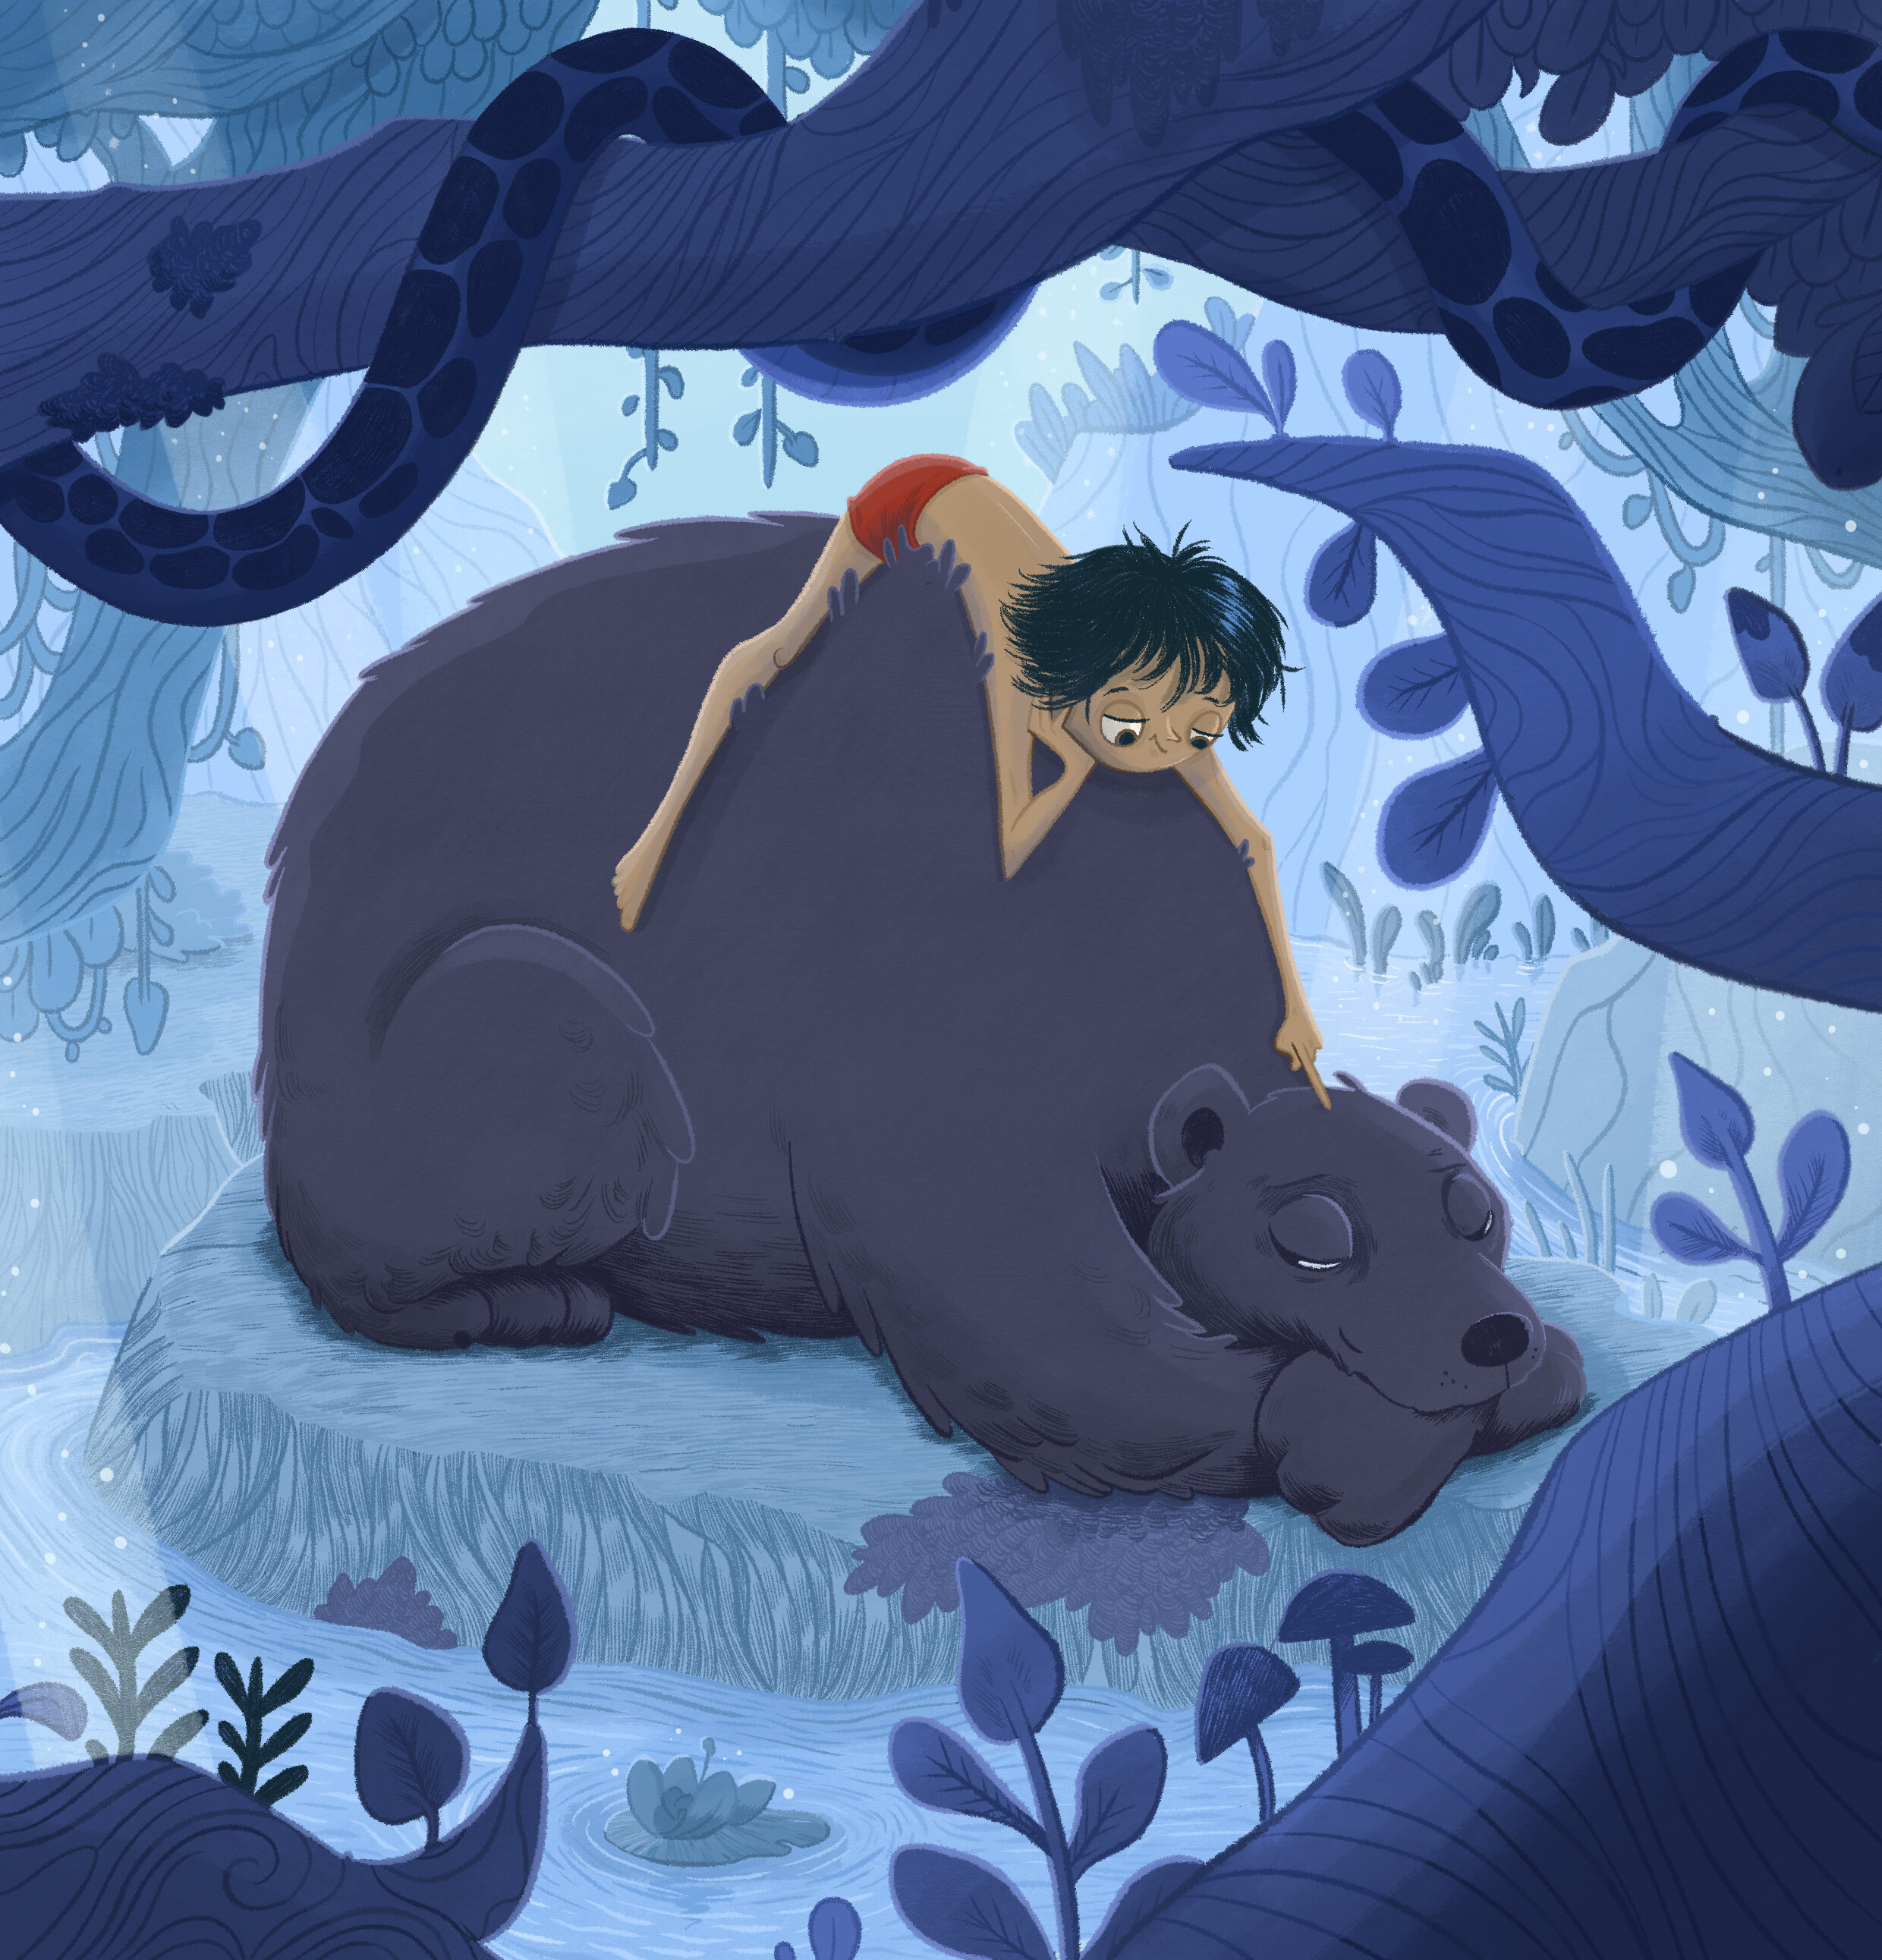 From 'the jungle book' , 2019